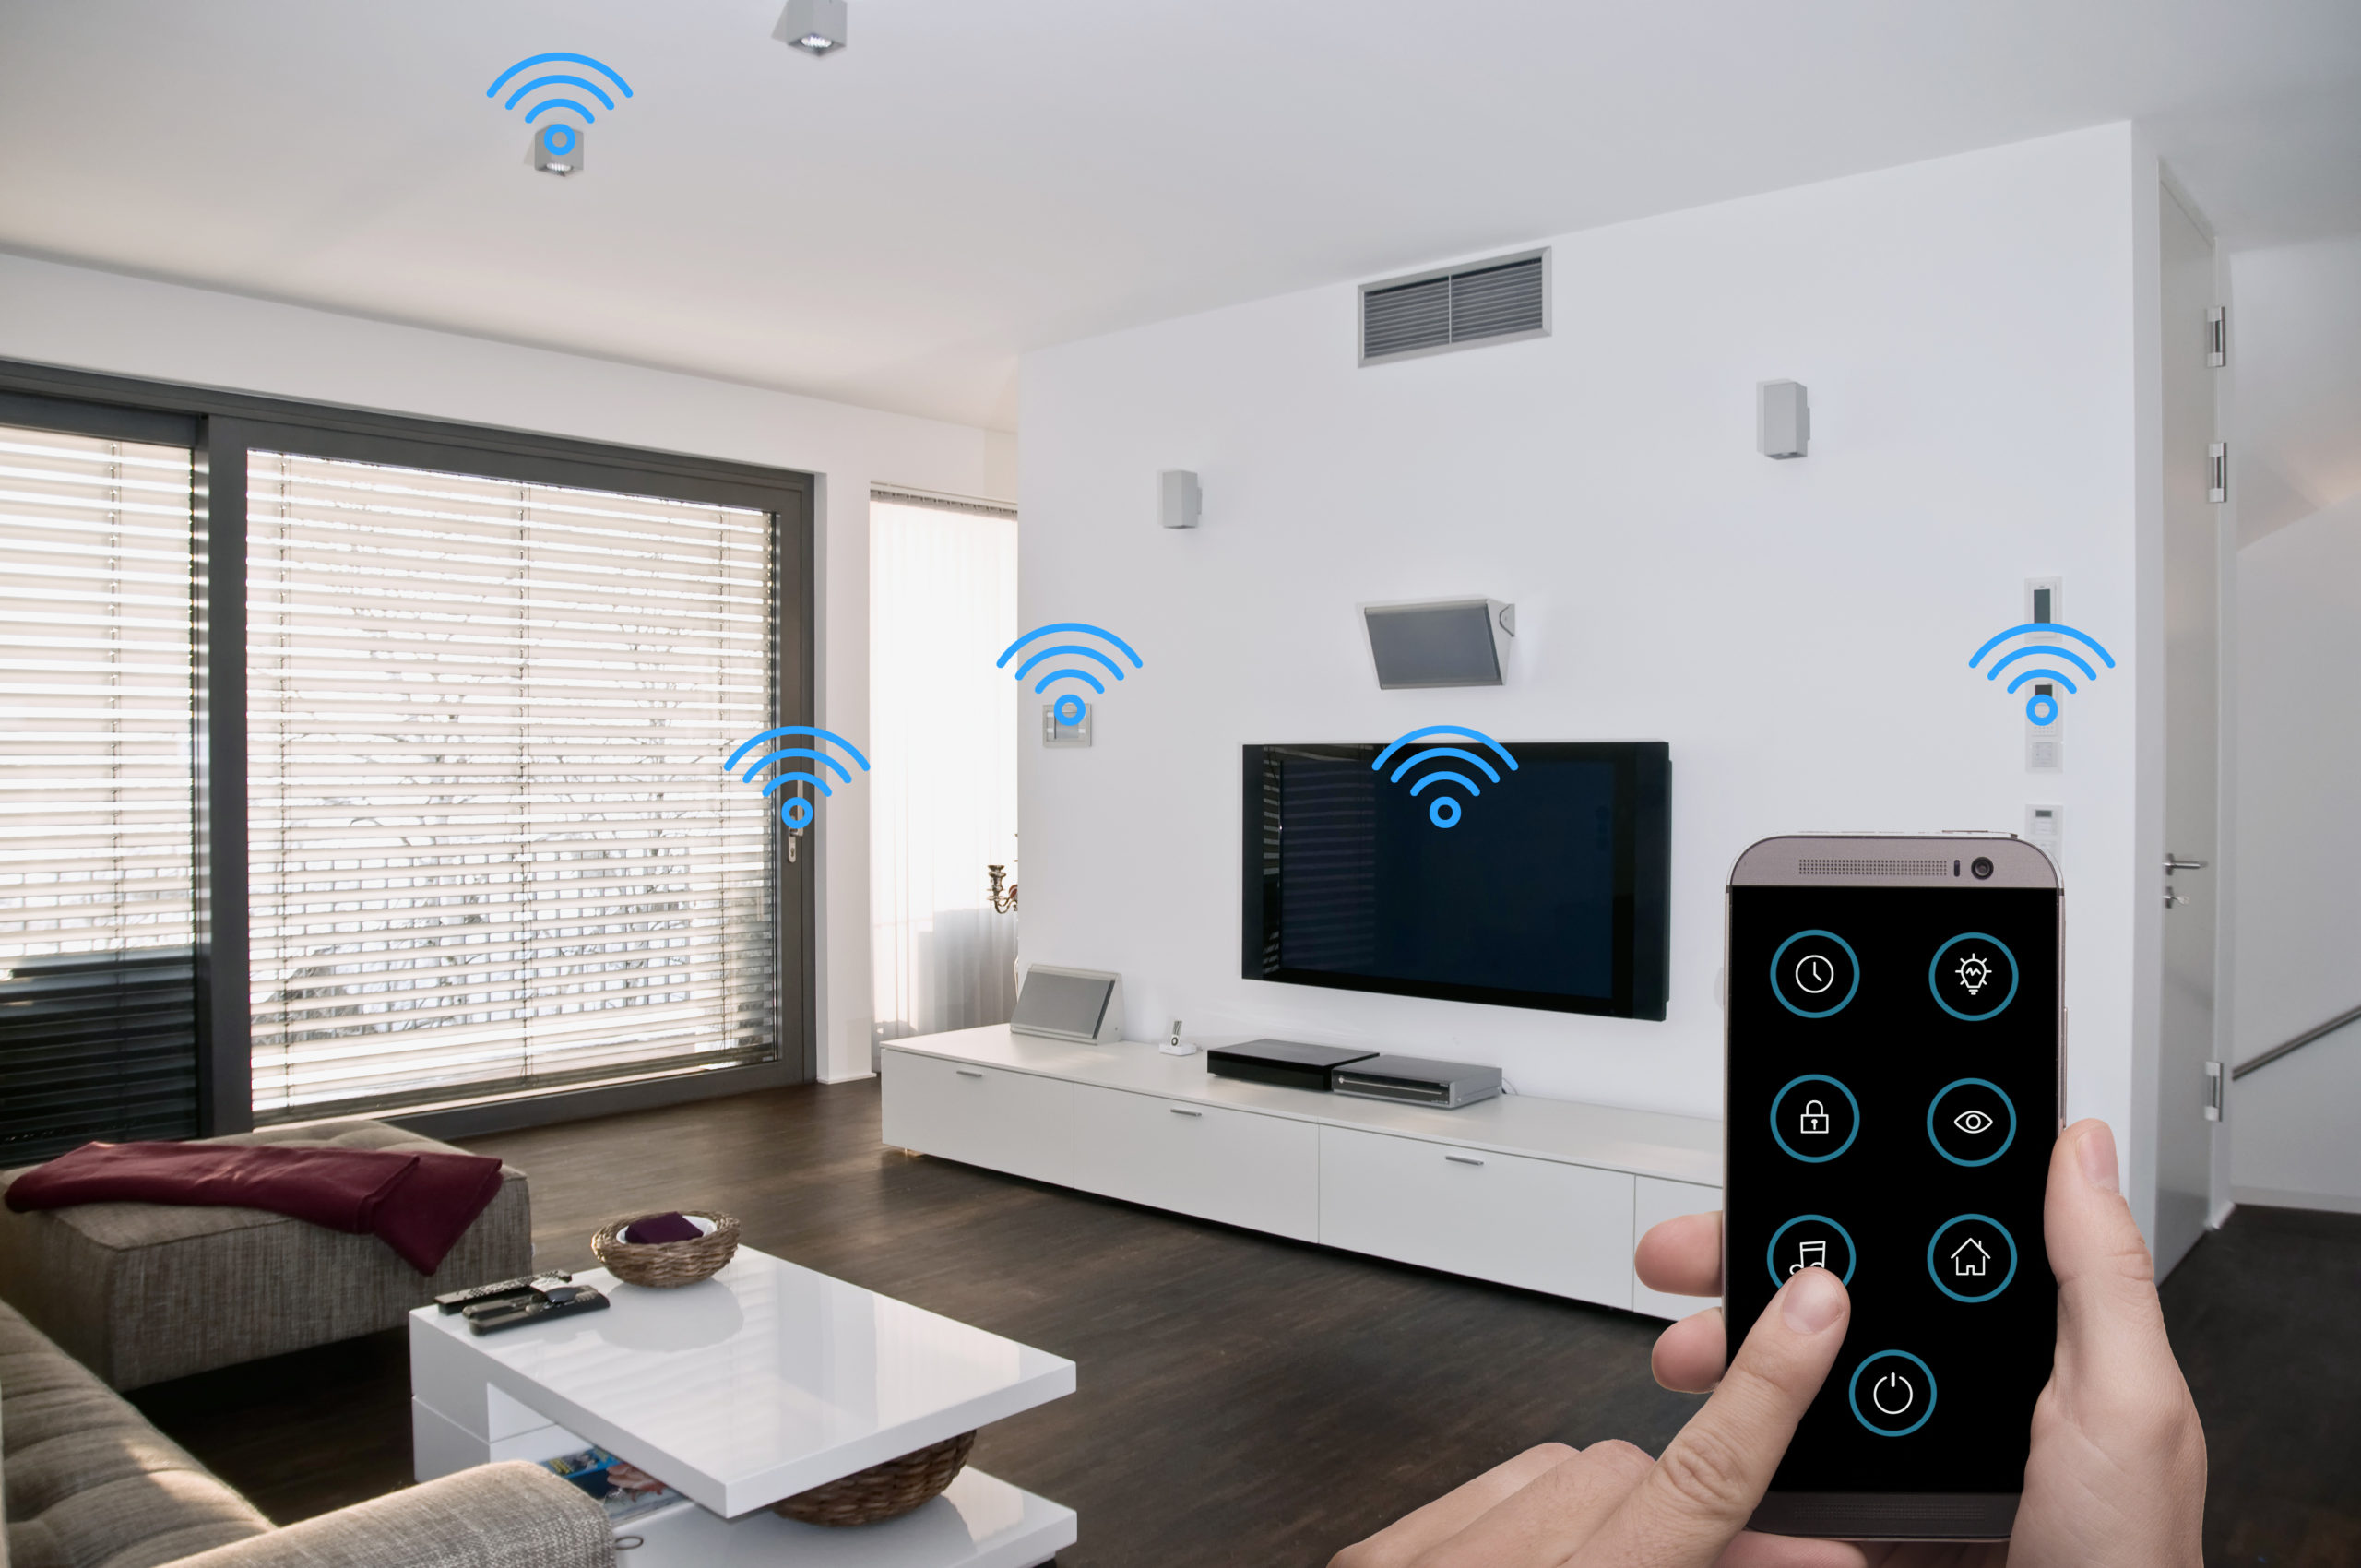 Mans hand with device and smart home